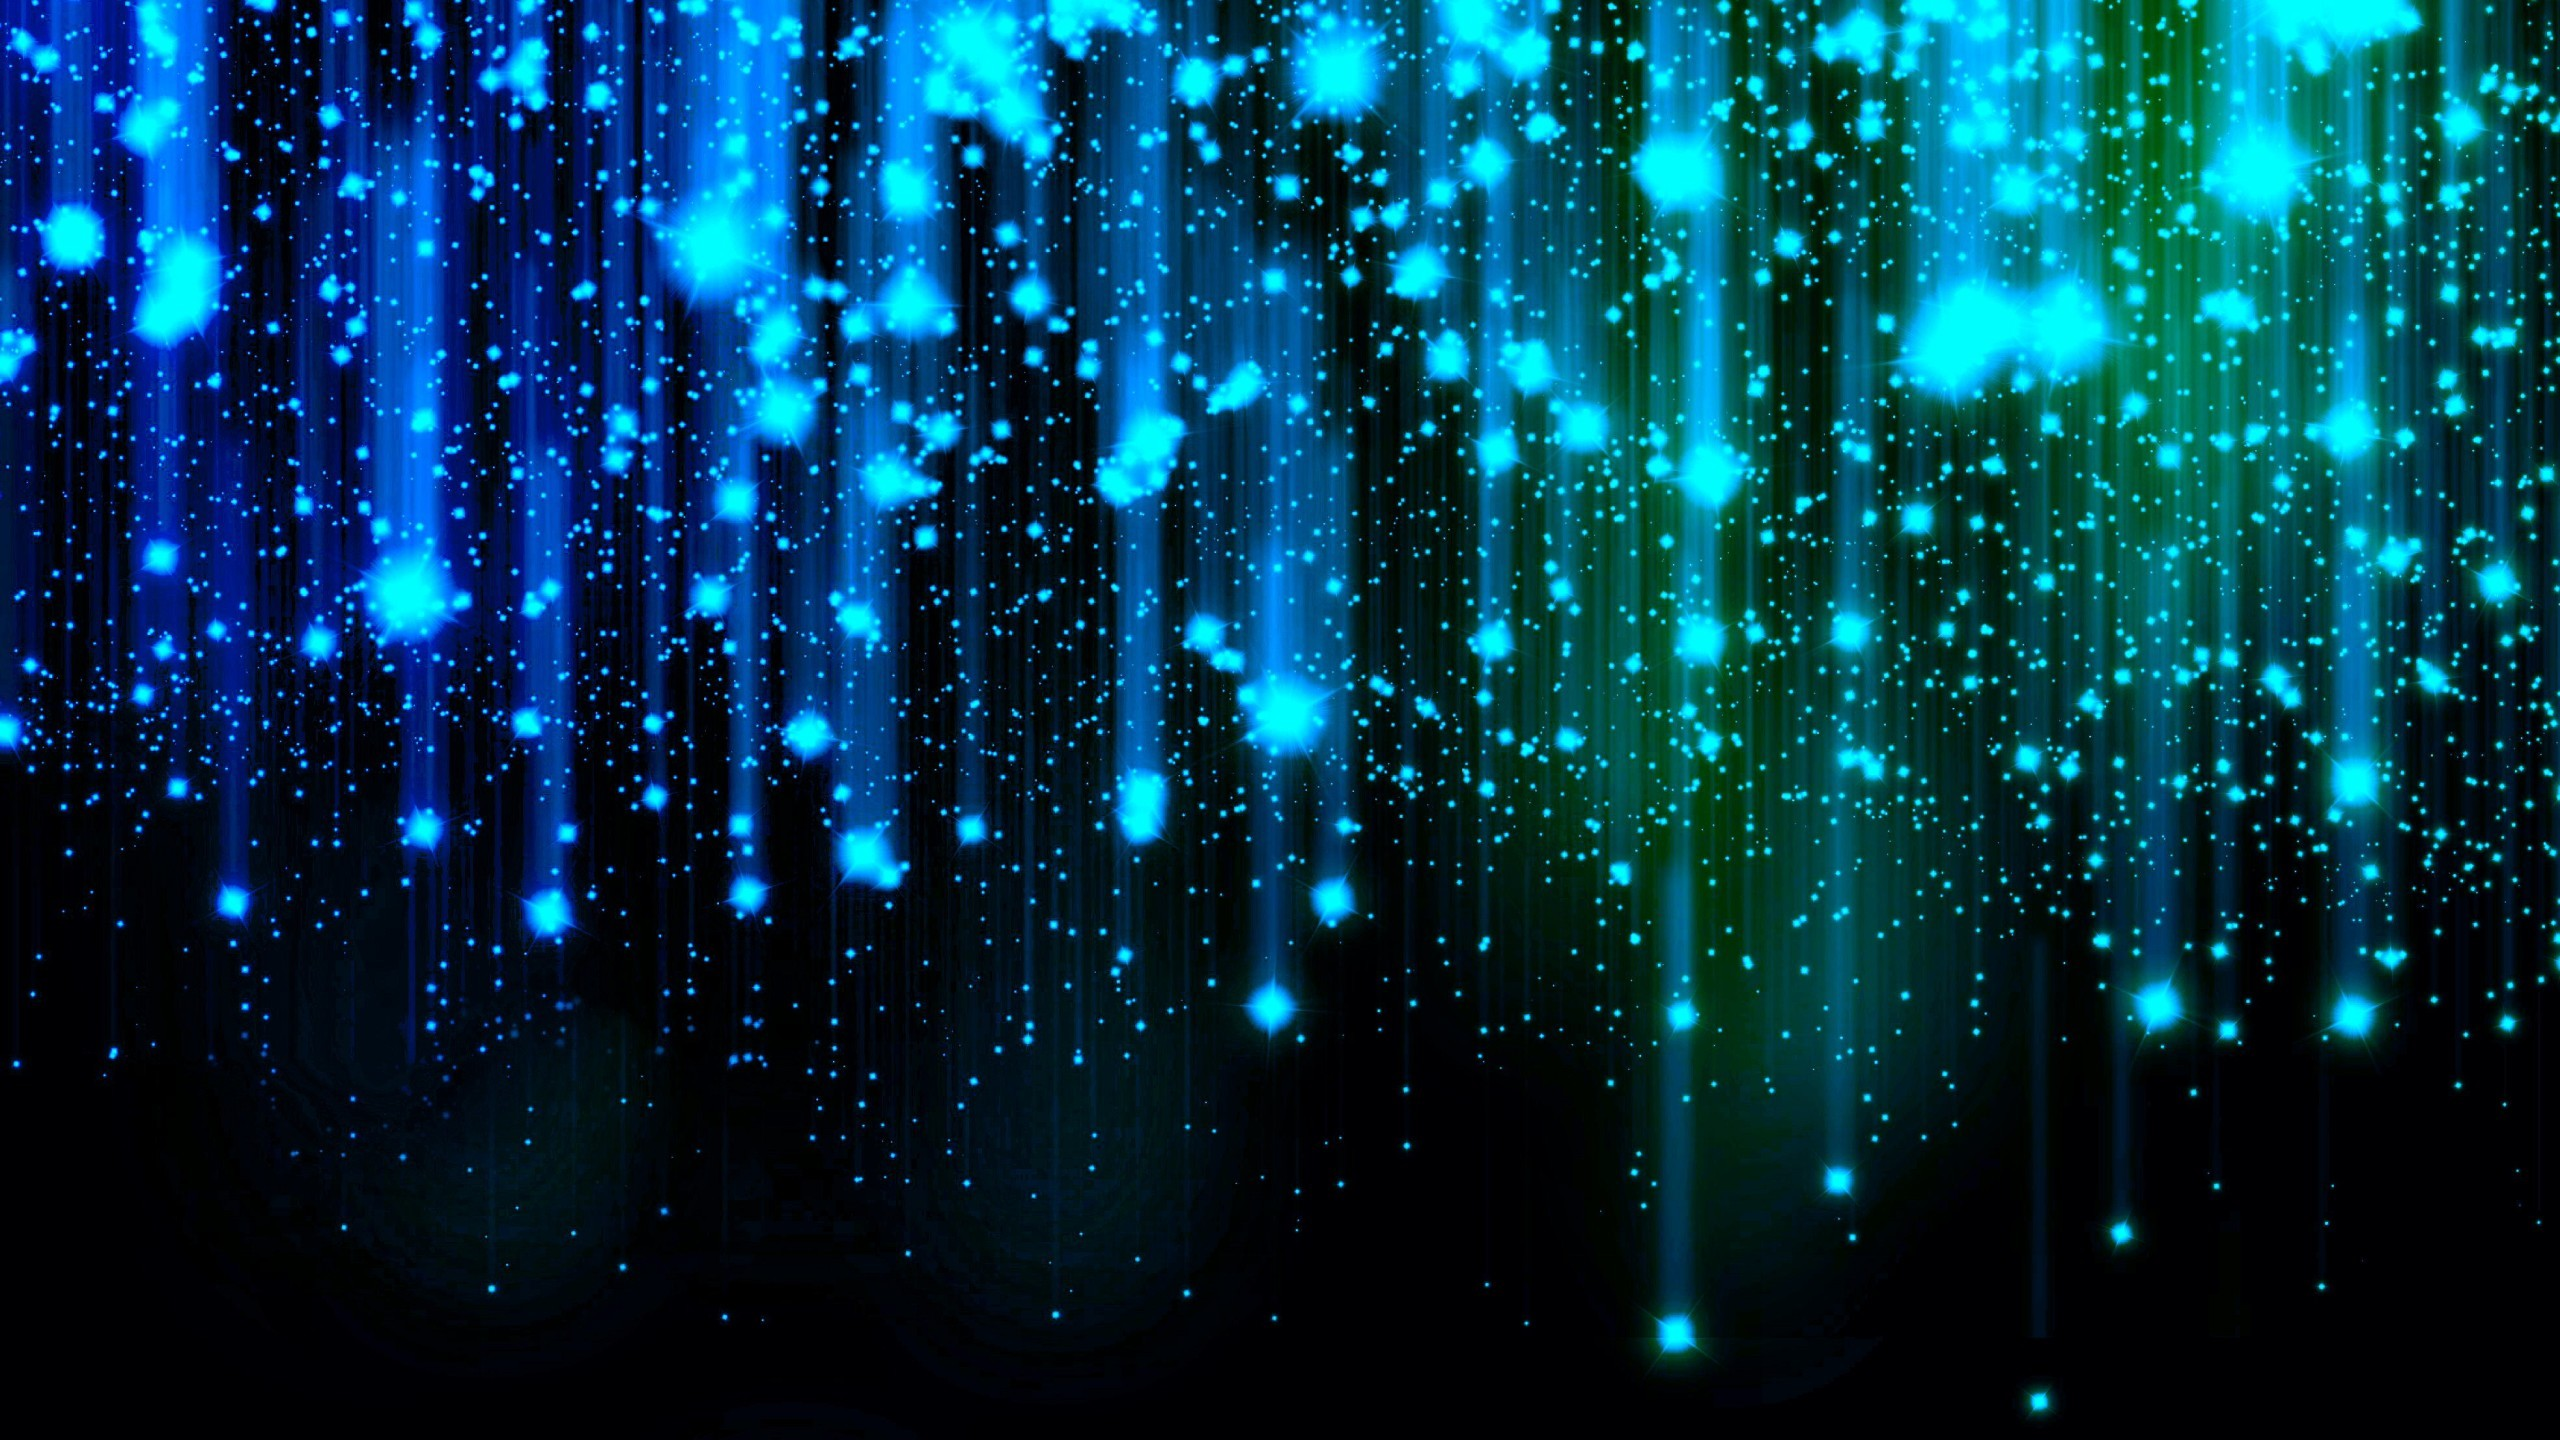 Blue Sparkle Glow Abstract Wallpaper 2560×1440.